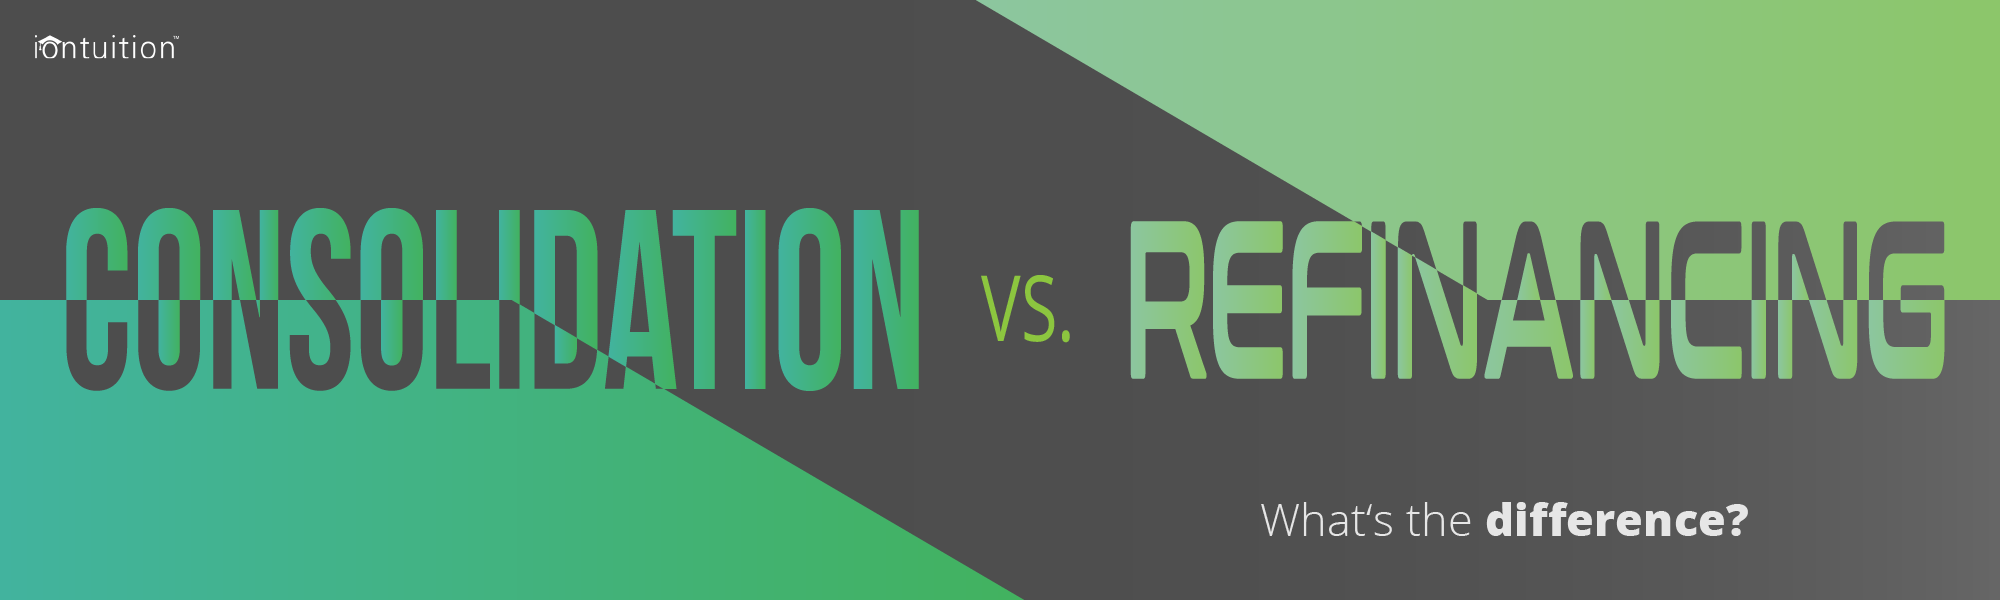 Knowing the Difference between Consolidation and Refinancing Makes a Difference